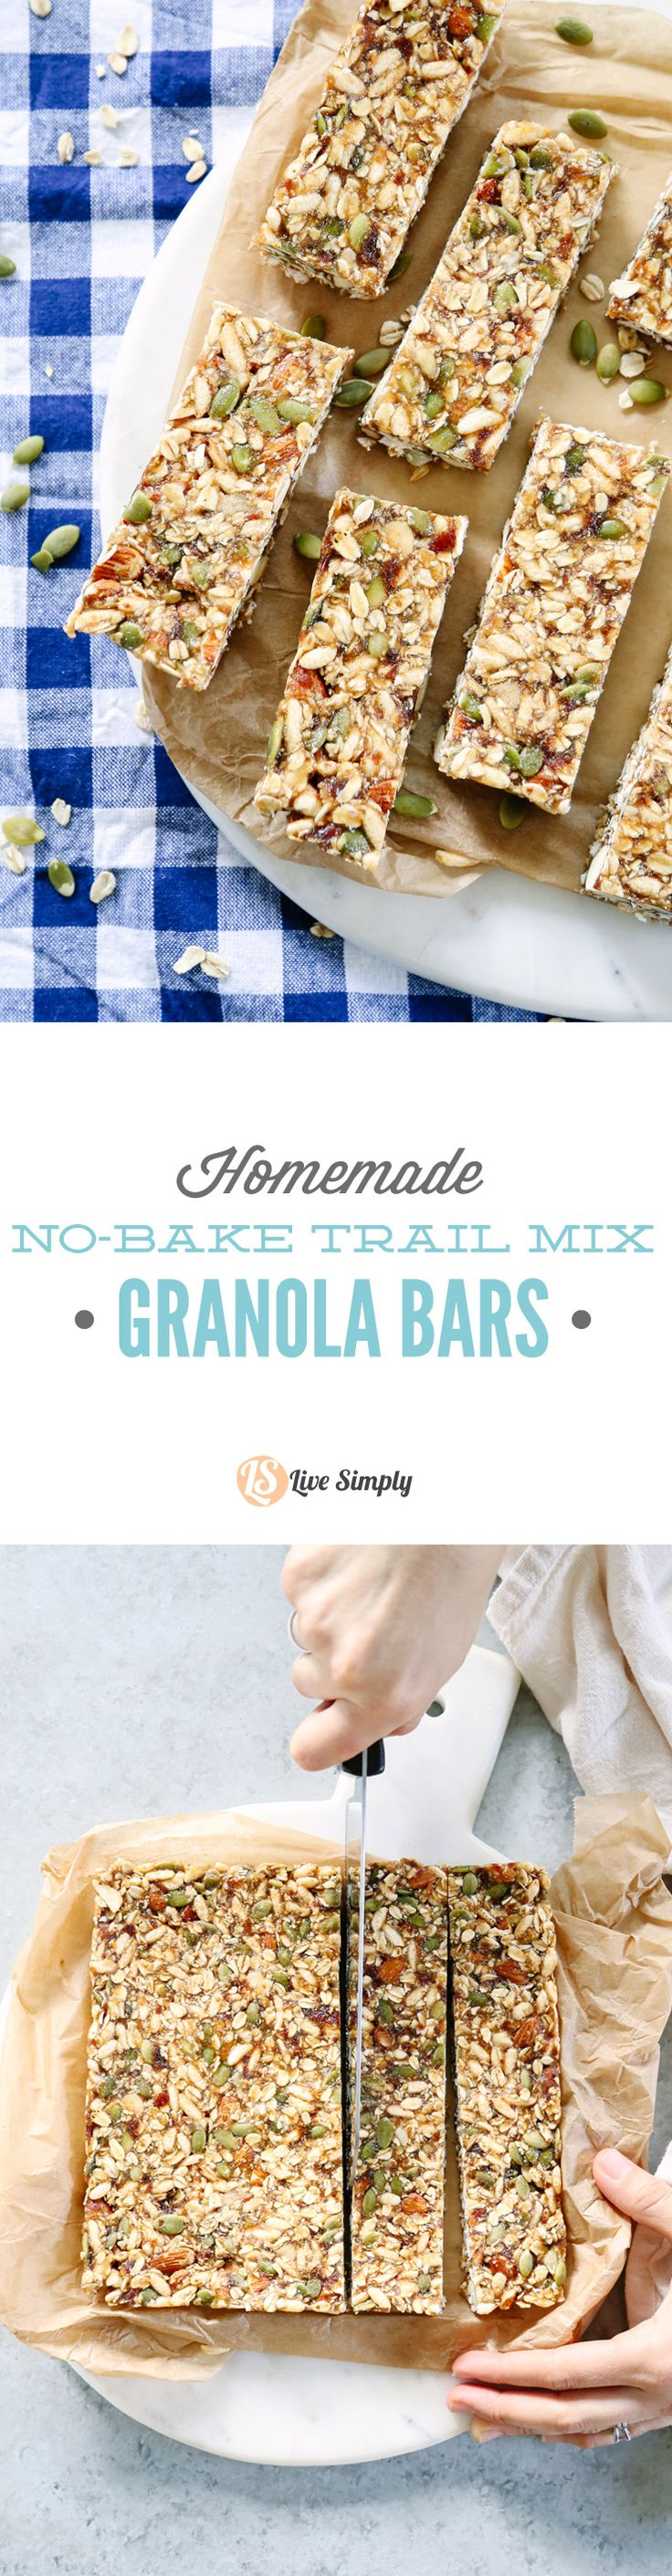 So good! The best granola bars I've ever made: salty, sweet, and chewy. And they stick together...yay! 100% real food ingredients.